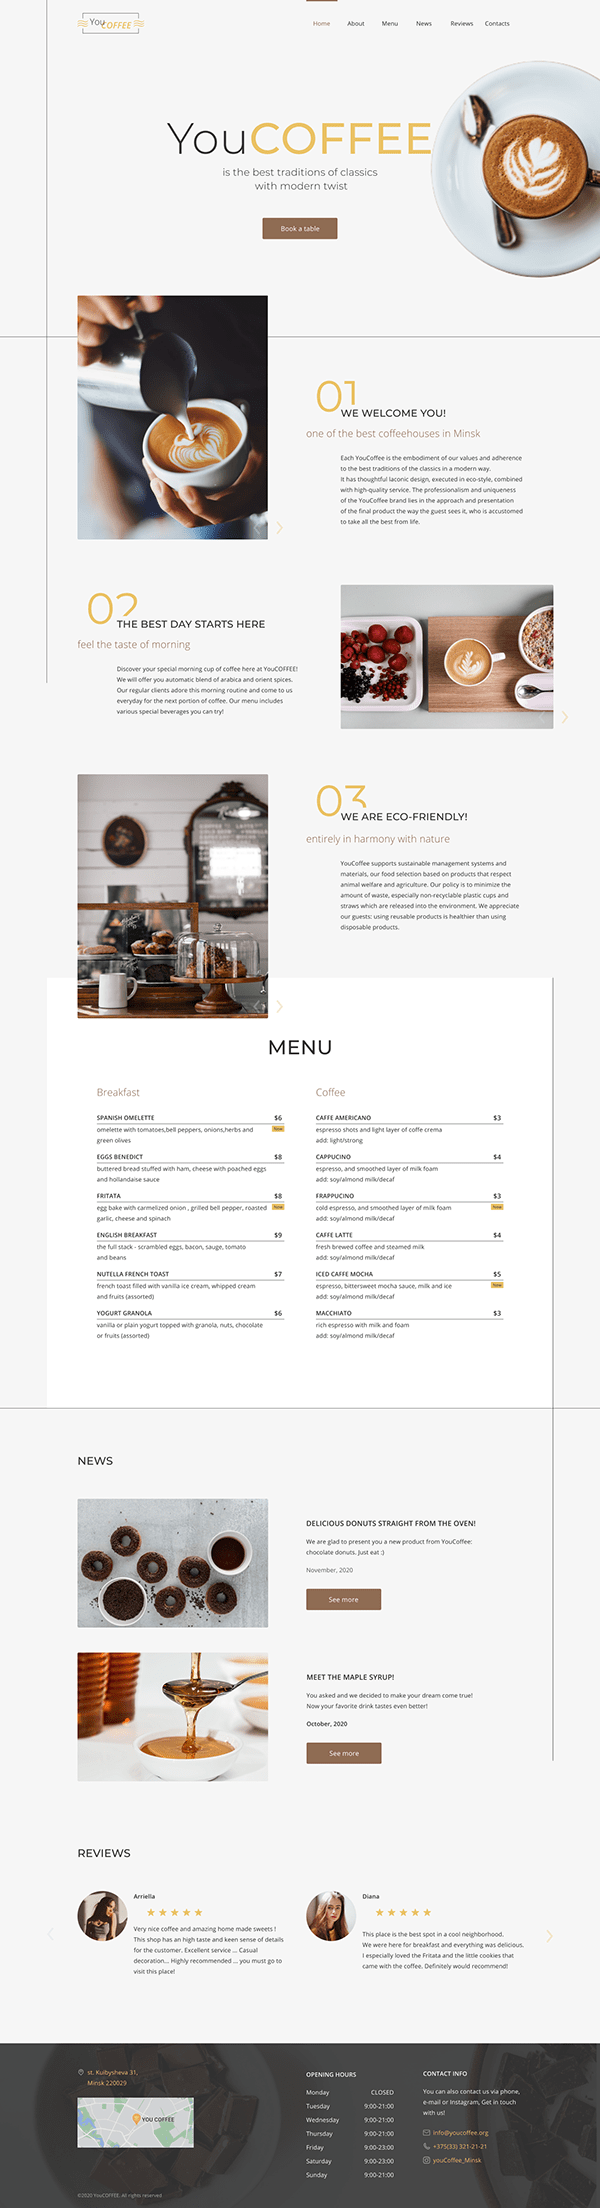 YouCOFFEE - Landing page